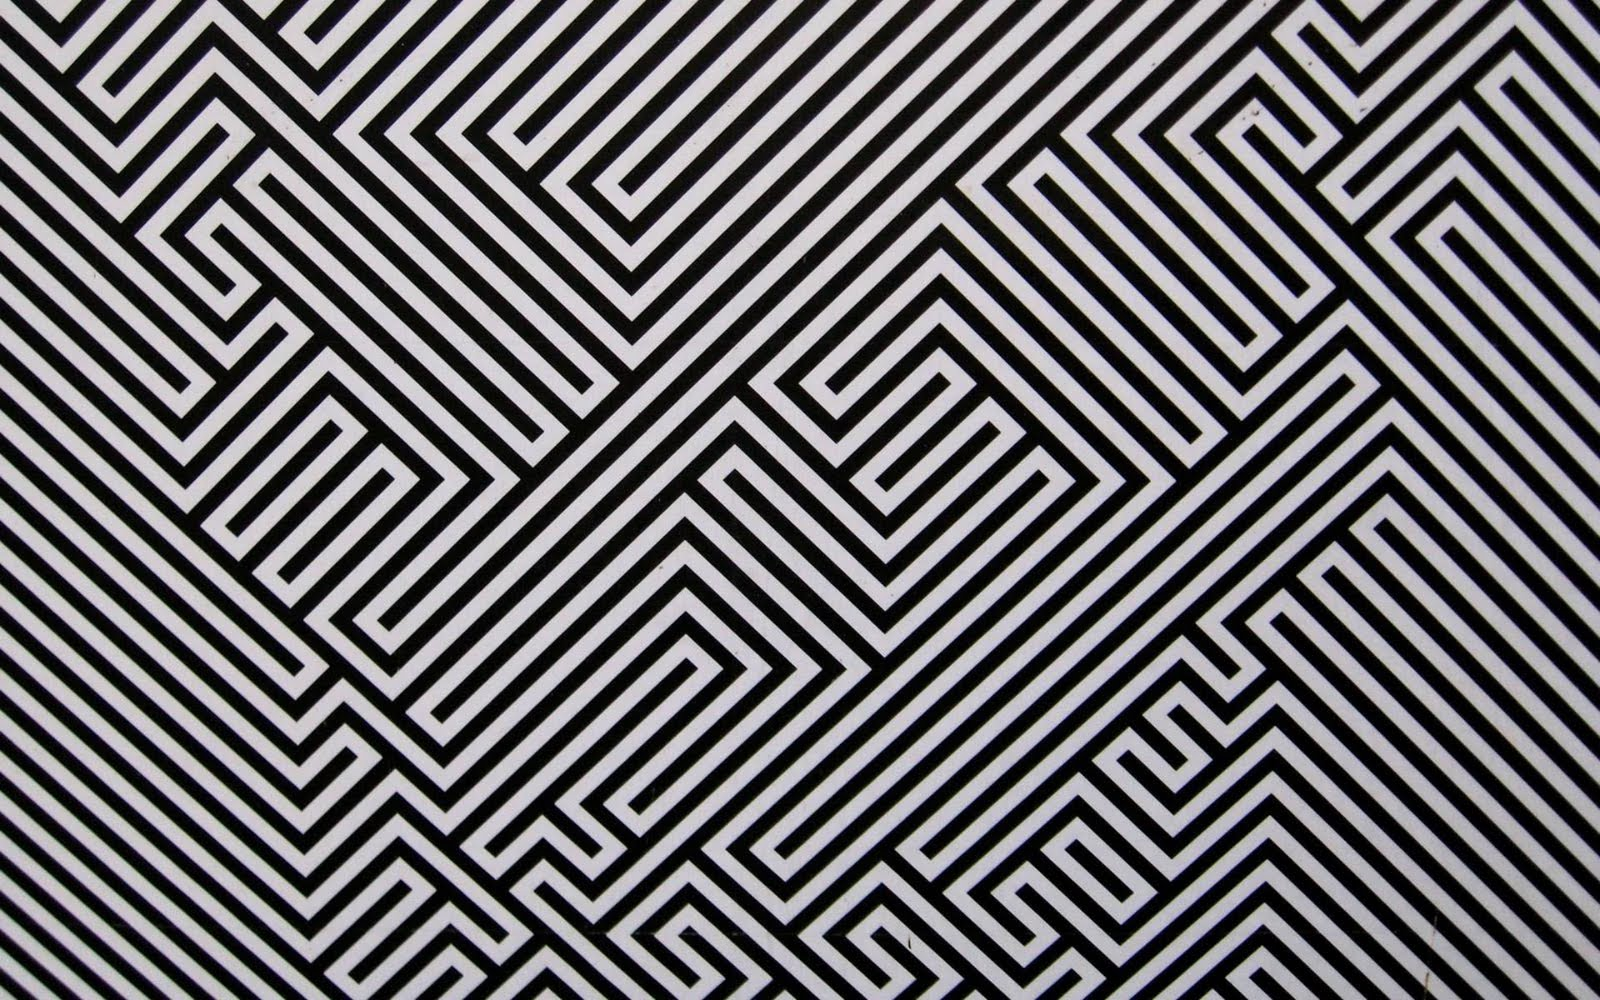 besttopdesktopabstractpatternwallpapershdwallpaper